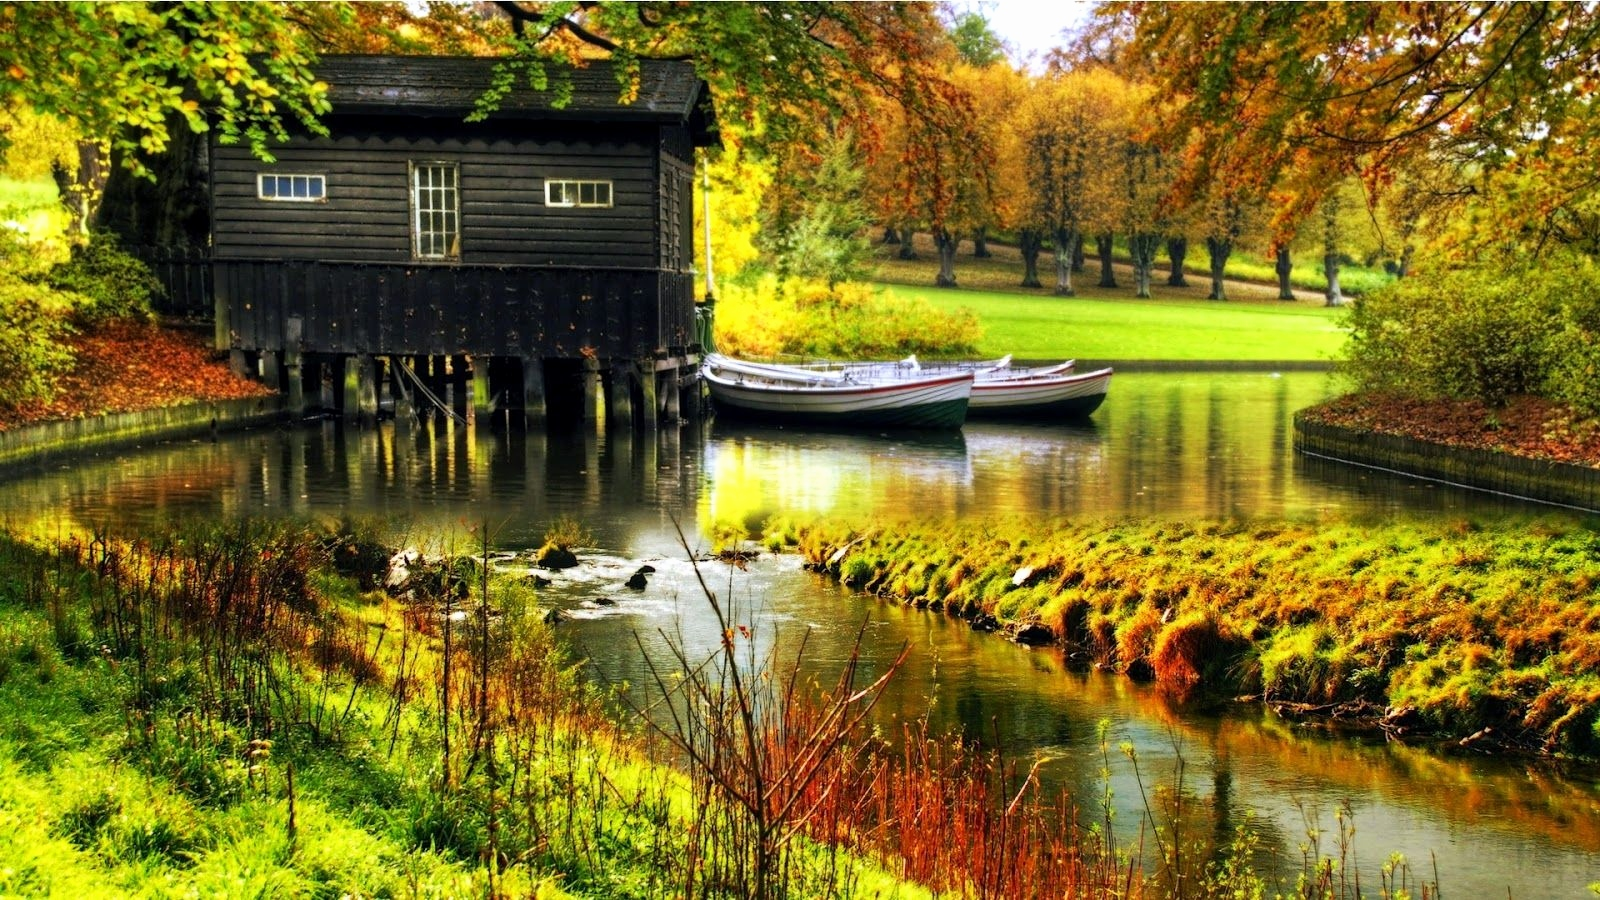 Herbstbilder Kostenlos Herunterladen Best Lake View Nature Wallpaper for Free Free Hd Wallpapers